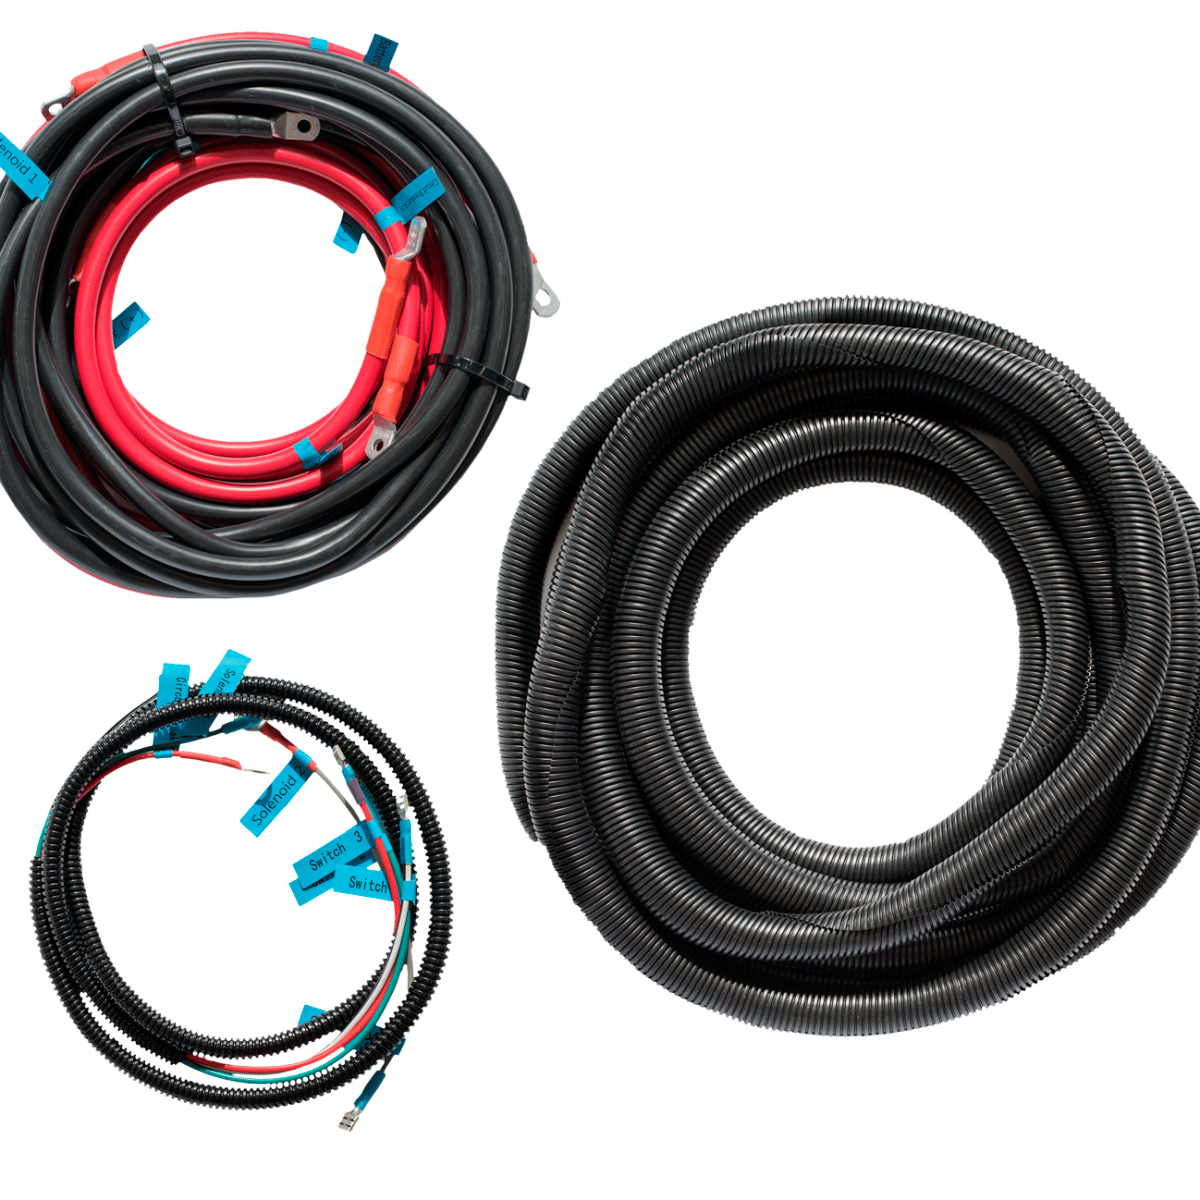 VIPER WIRING LOOM for BOATS up to 5.75M (micro/1000)